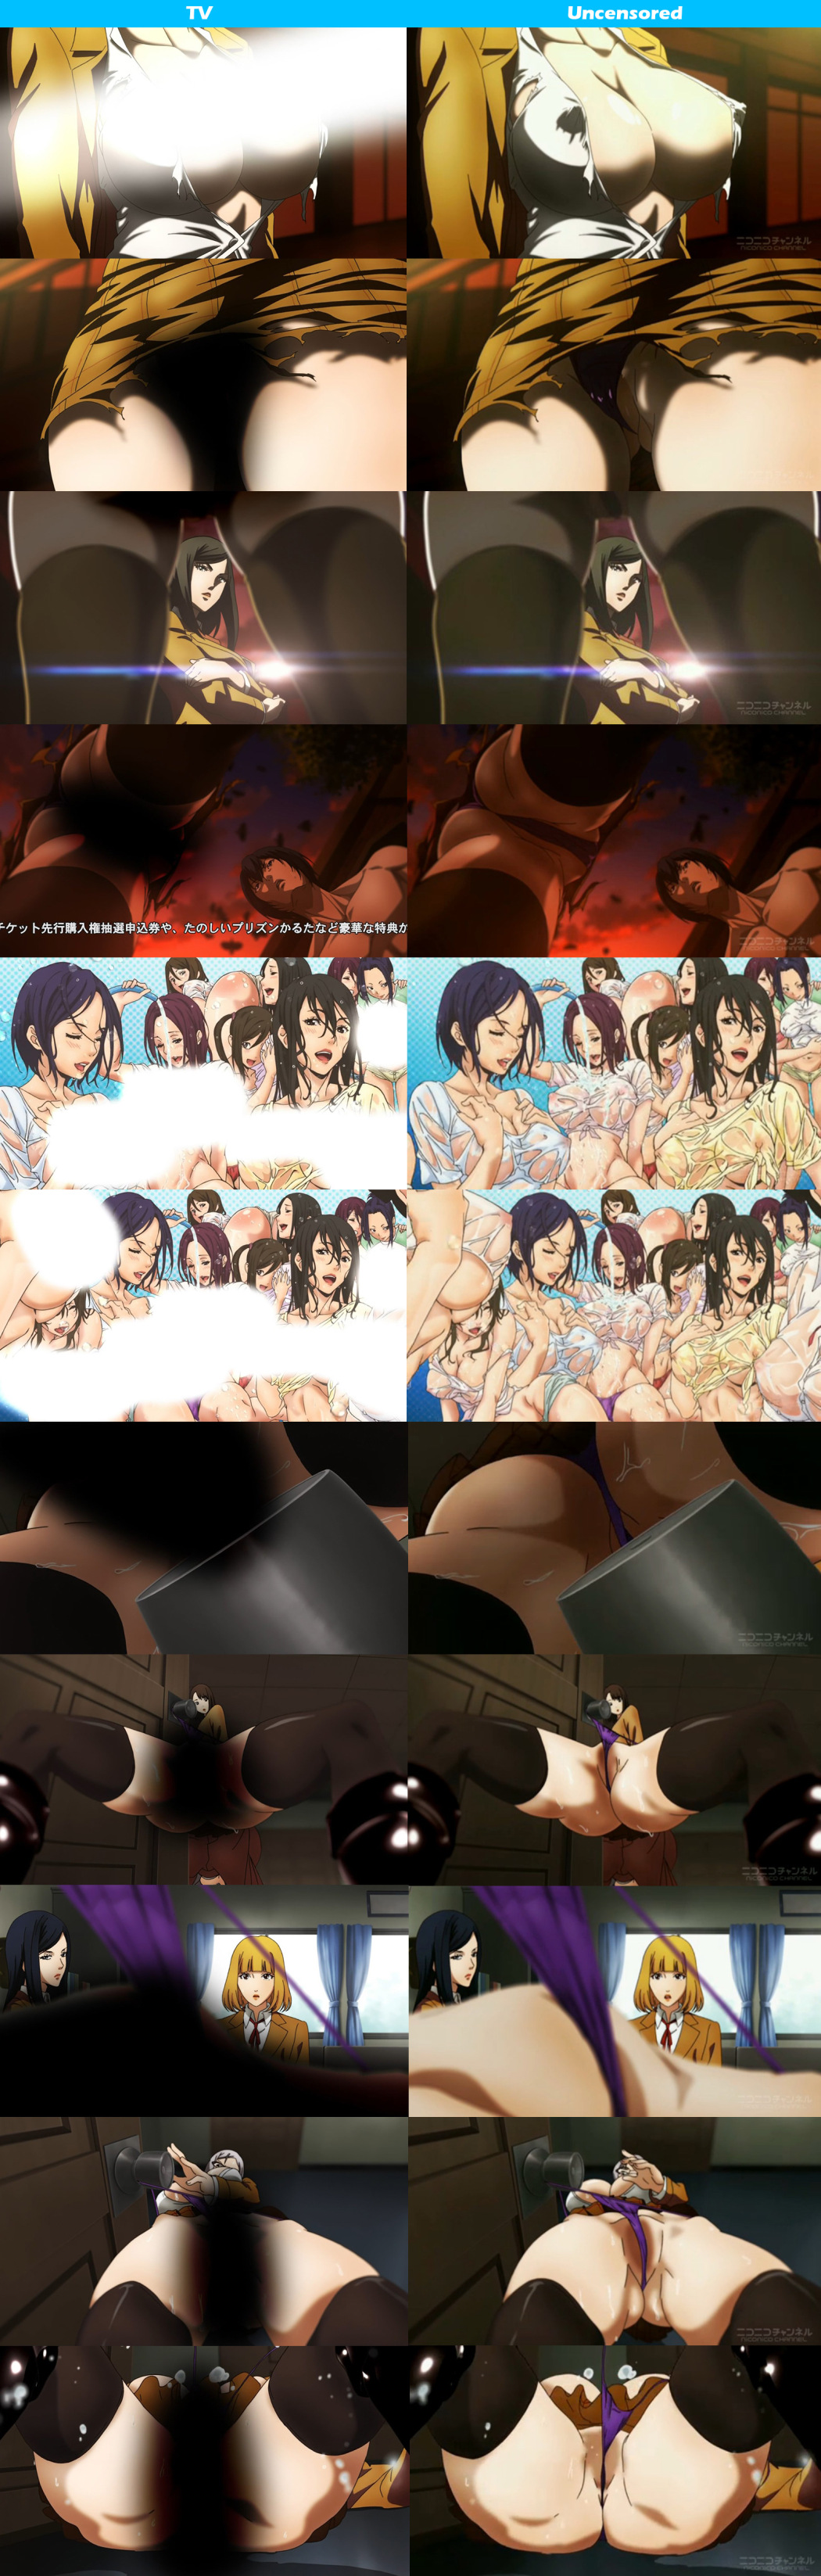 Uncensored Prison School Episode 5-8 Previewed on Niconico 6